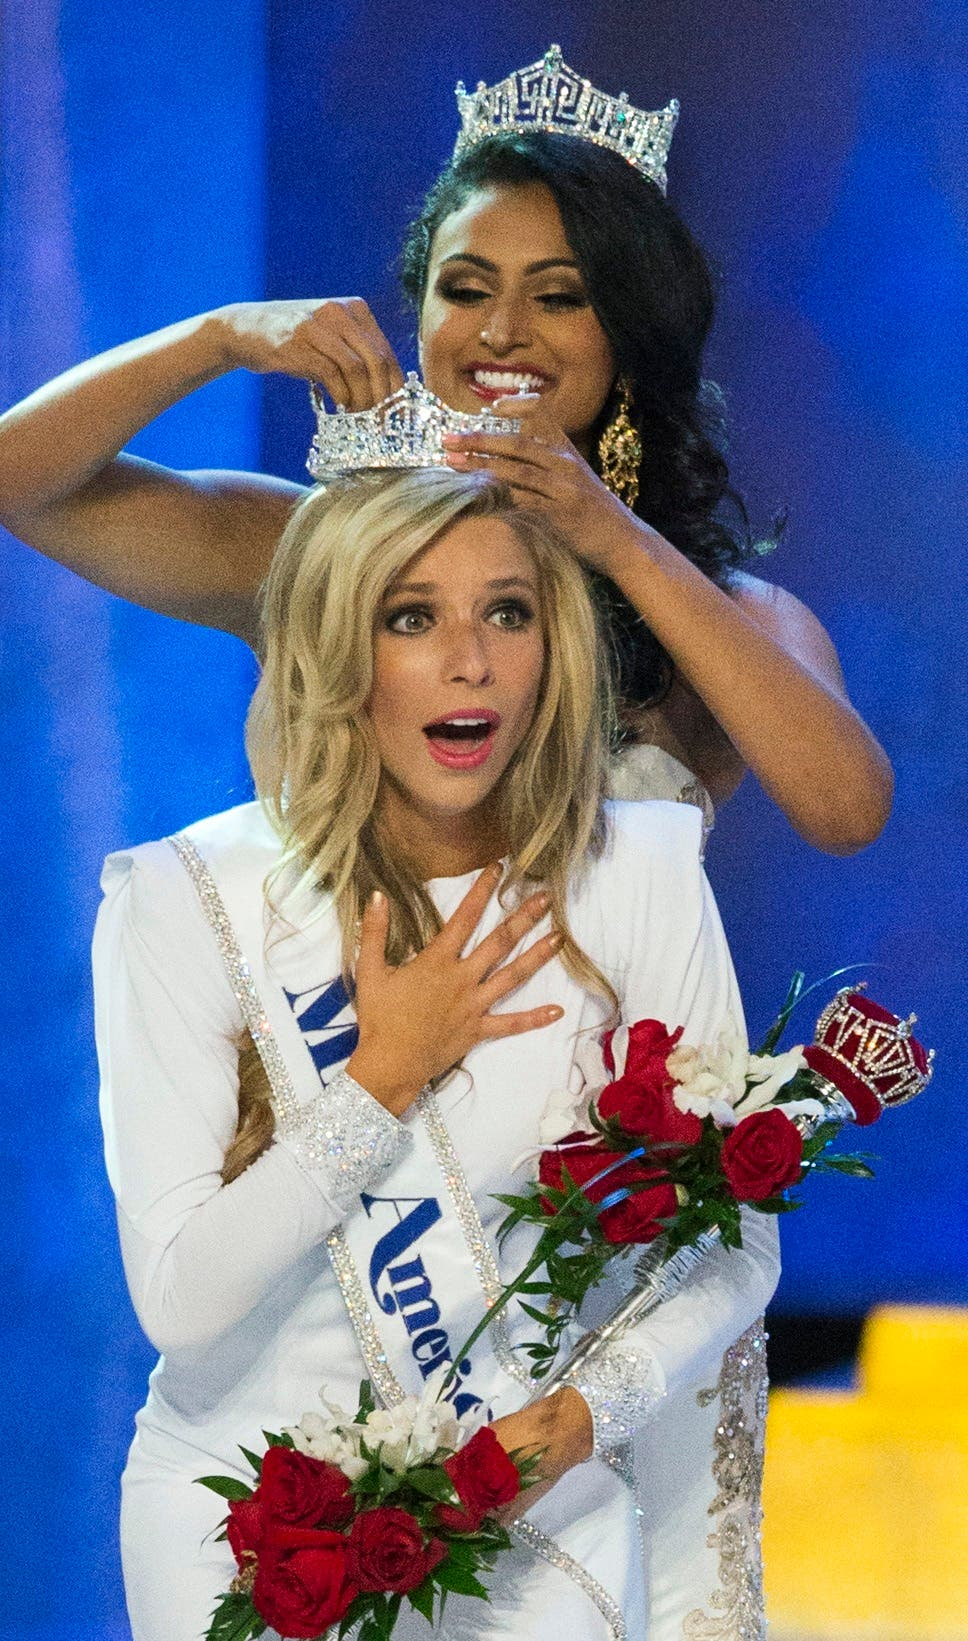 Miss New York Kira Kazantsev reacts as she is crowned as the winner of the 2015 Miss America Competition by Miss America 2014 Nina Davuluri in Atlantic City, New Jersey September 14, 2014.